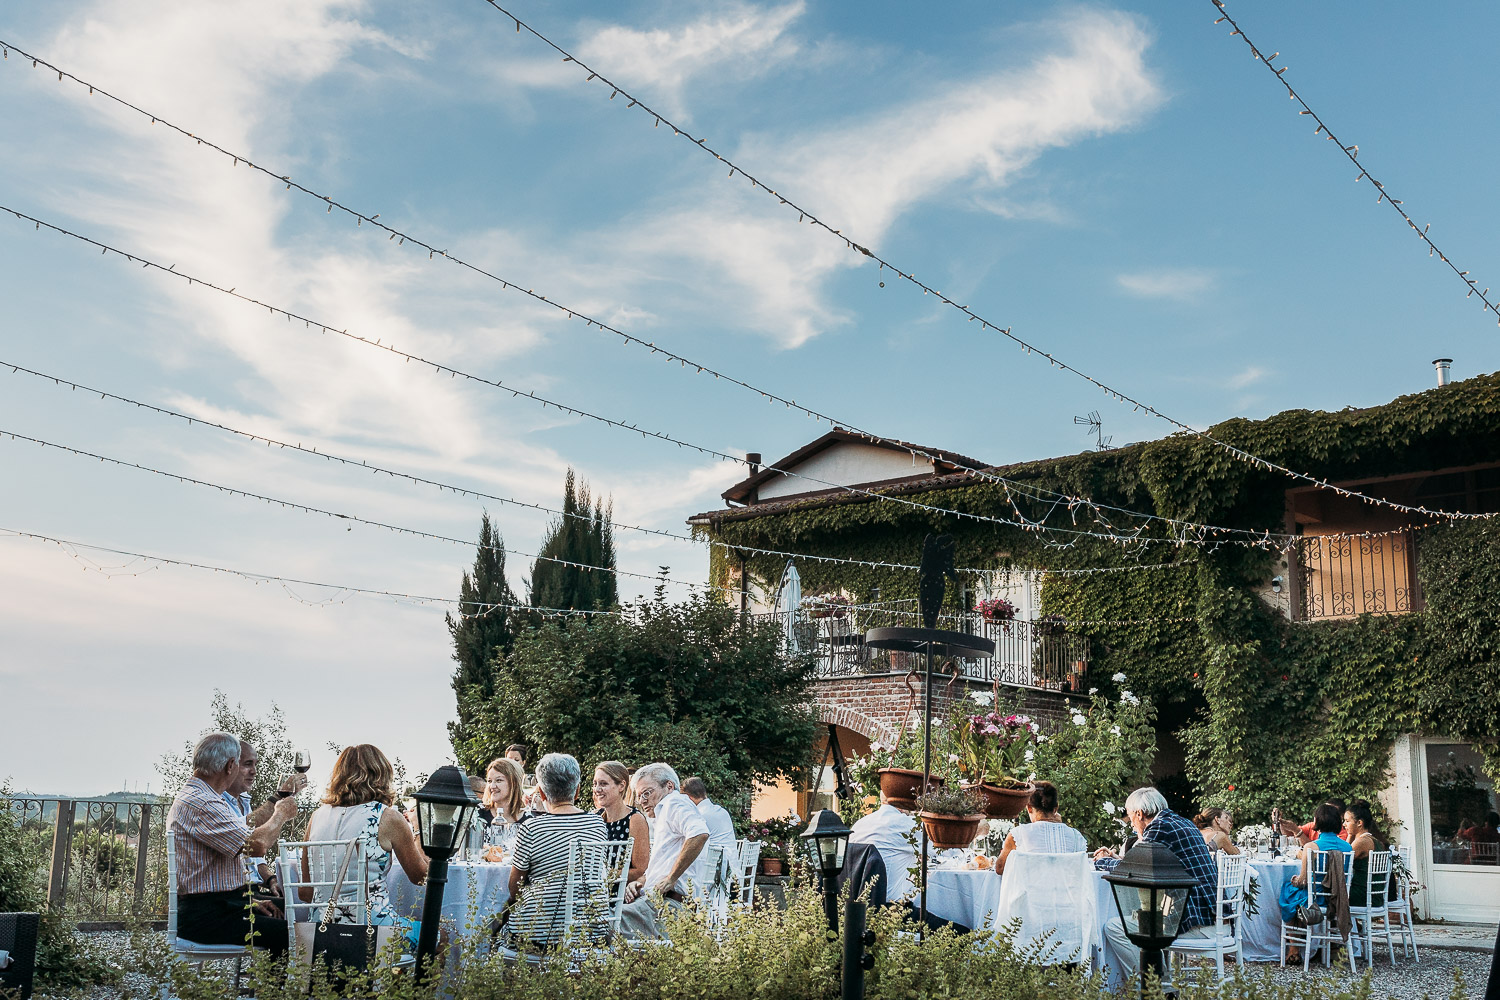 Italian wedding style in an ancient villa in the countryside of Piedmont